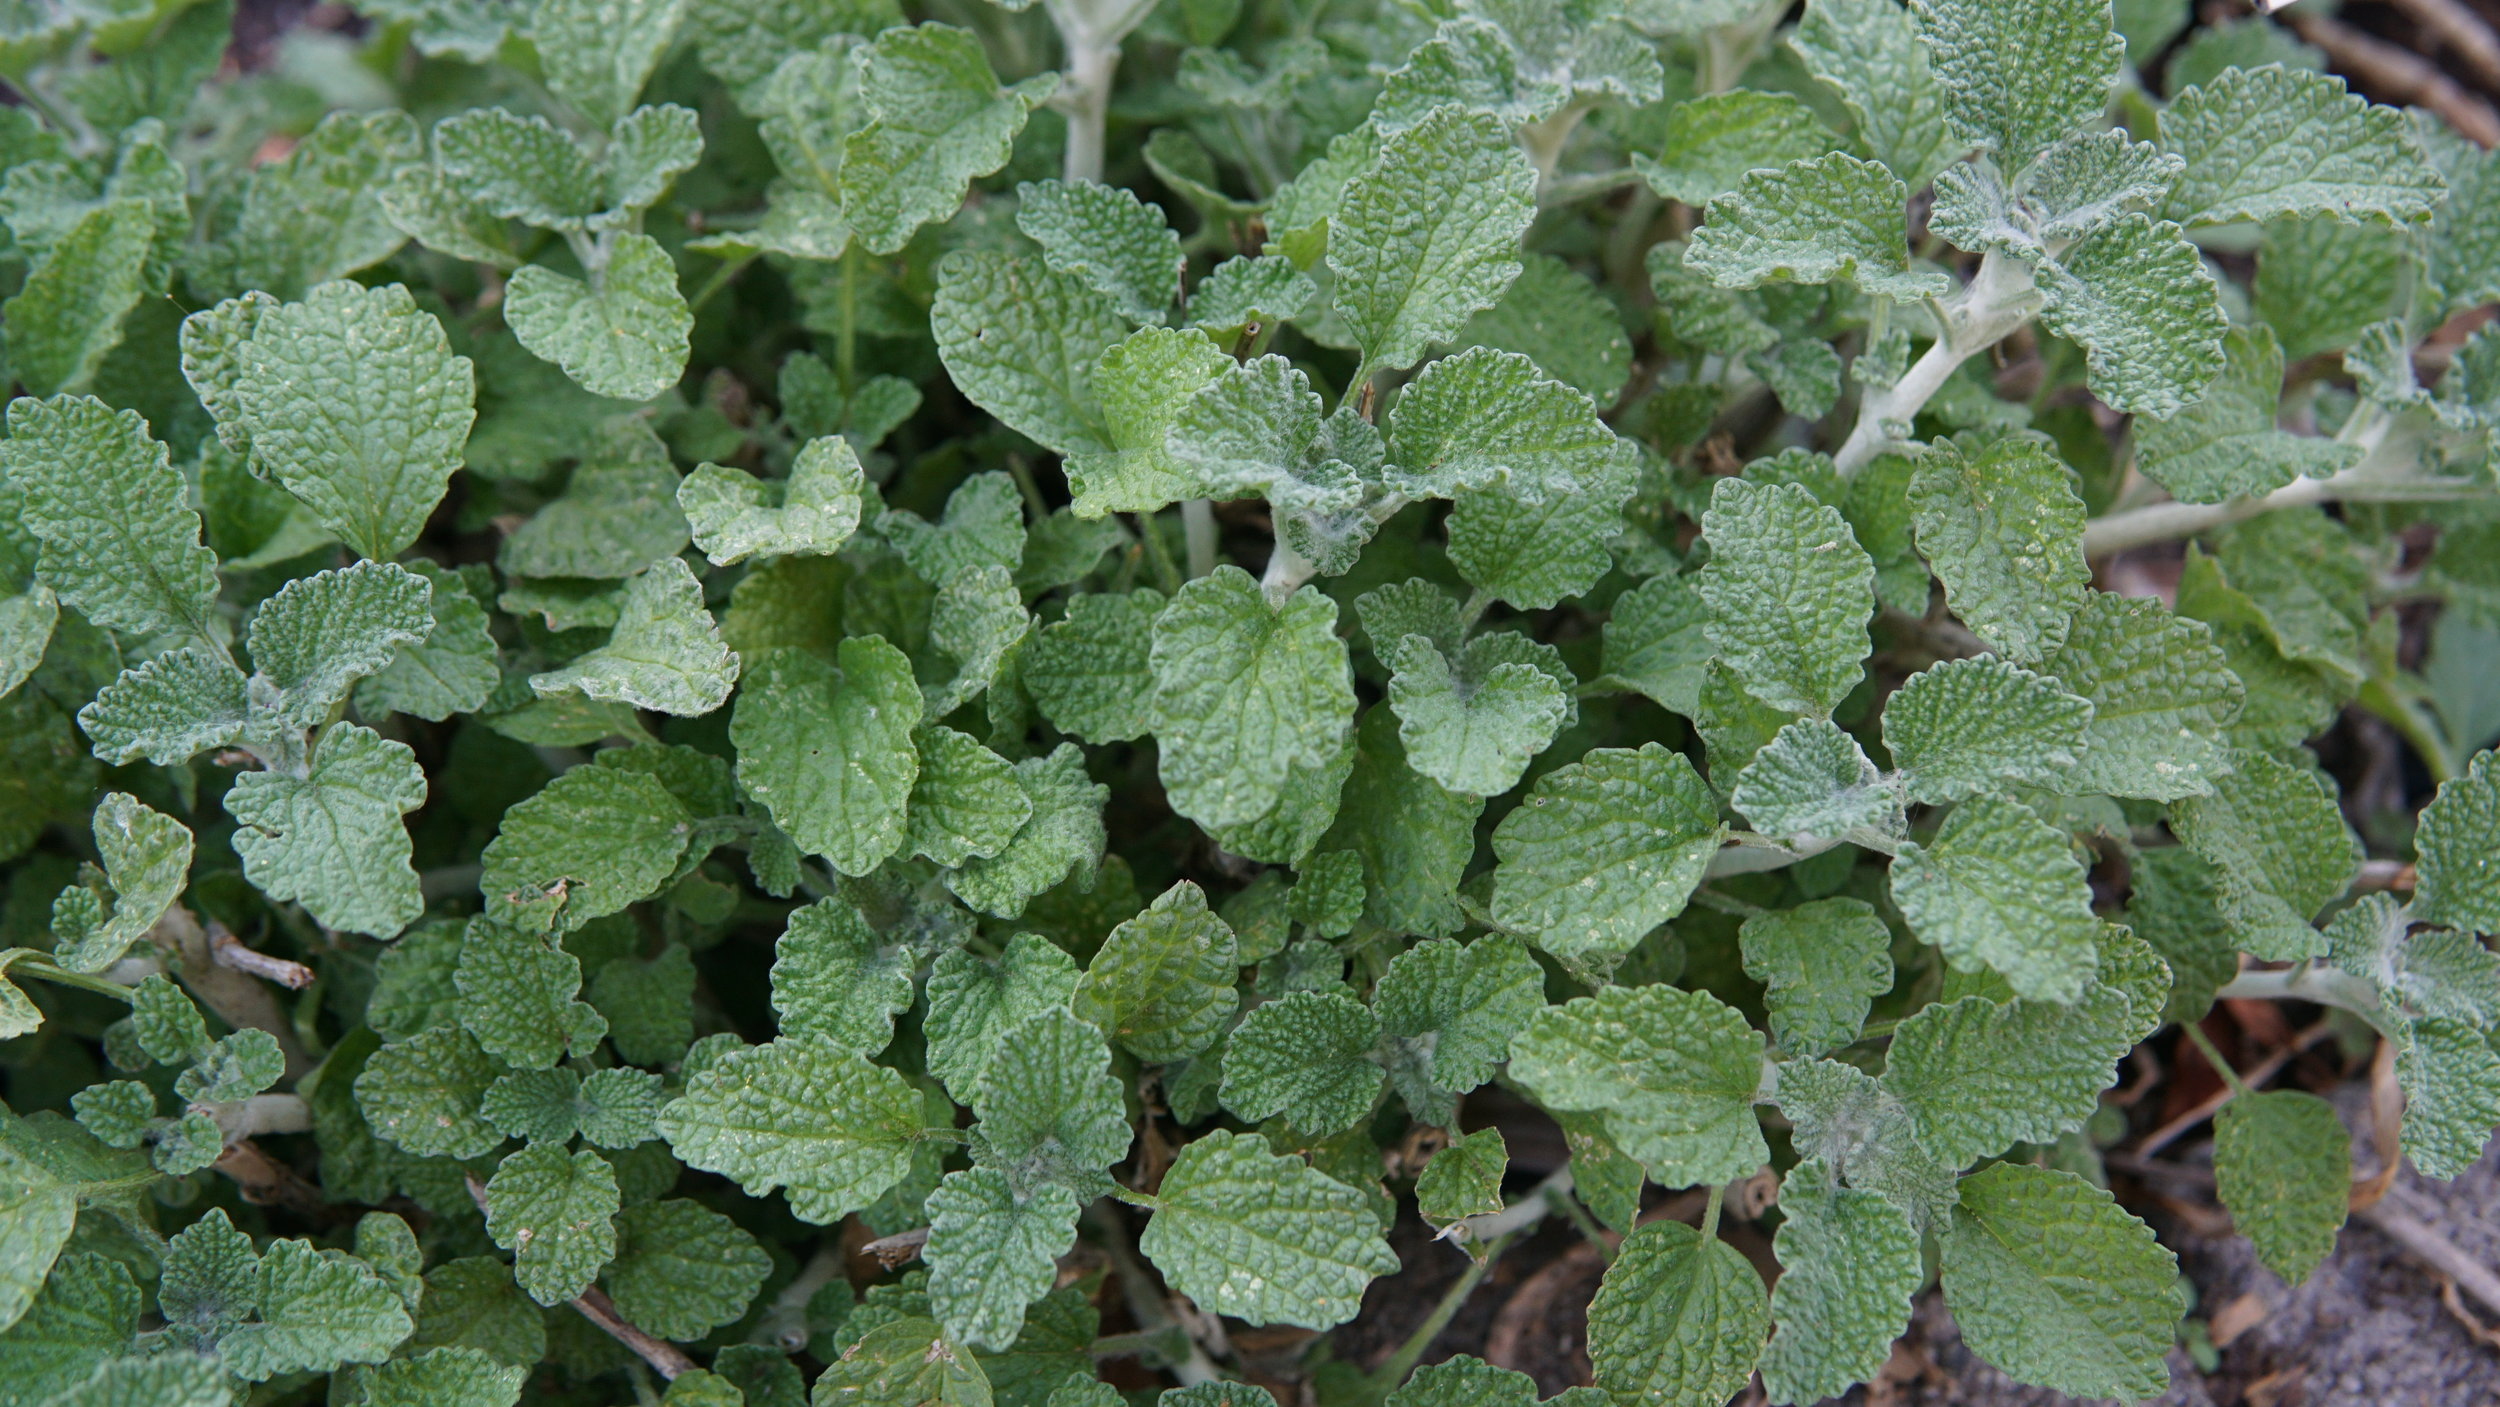 horehound leaves with lisa marie holmes